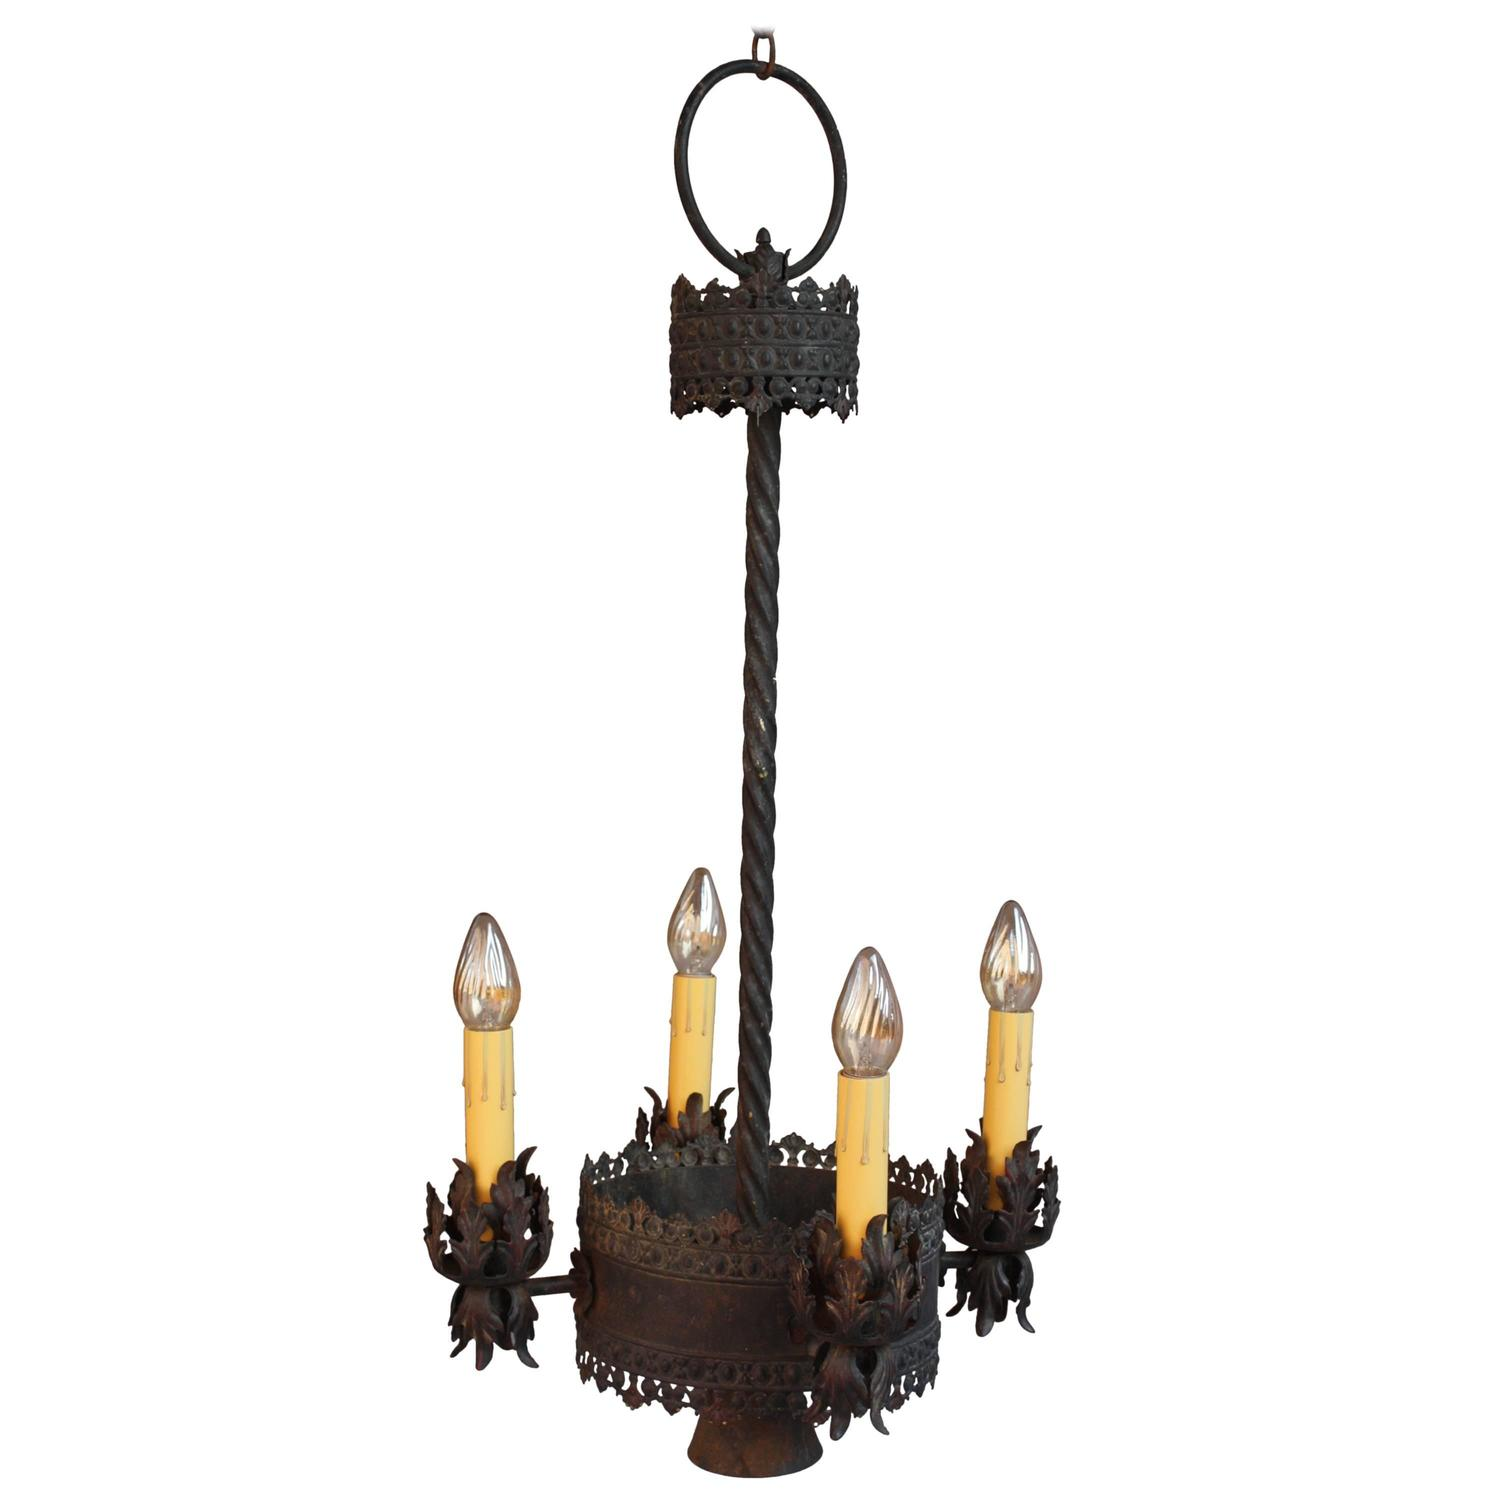 1920s Rare Spanish Revival Chandelier With Five Lights At